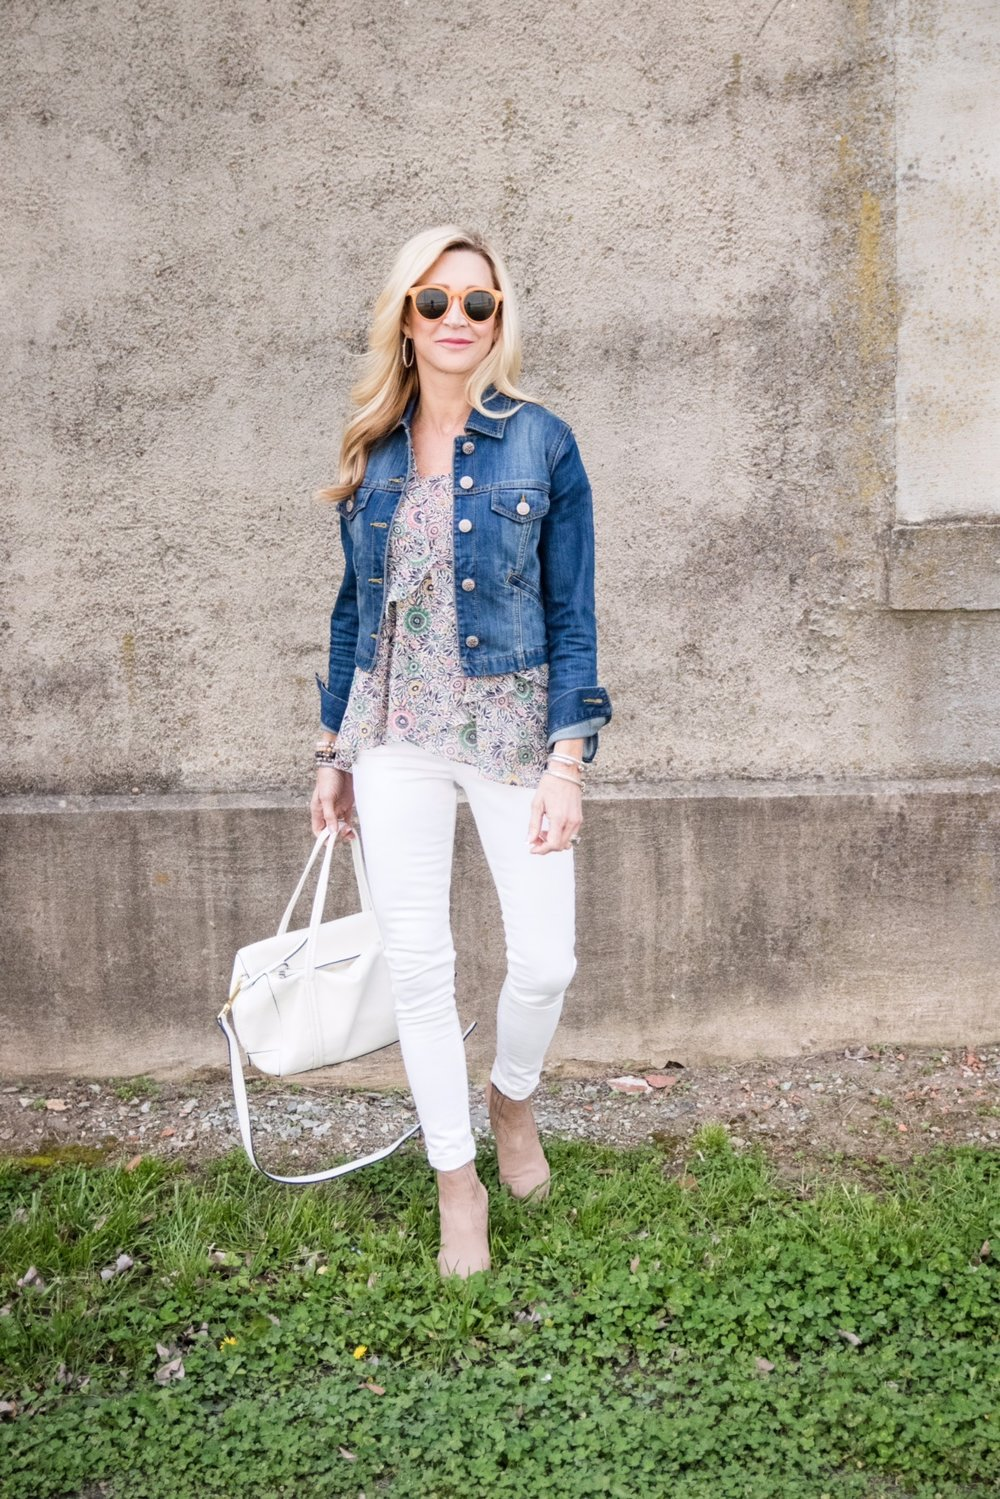 Spring Outfit Idea - Cabi top and jacket with Vera Bradley Bag and Target sunglasses